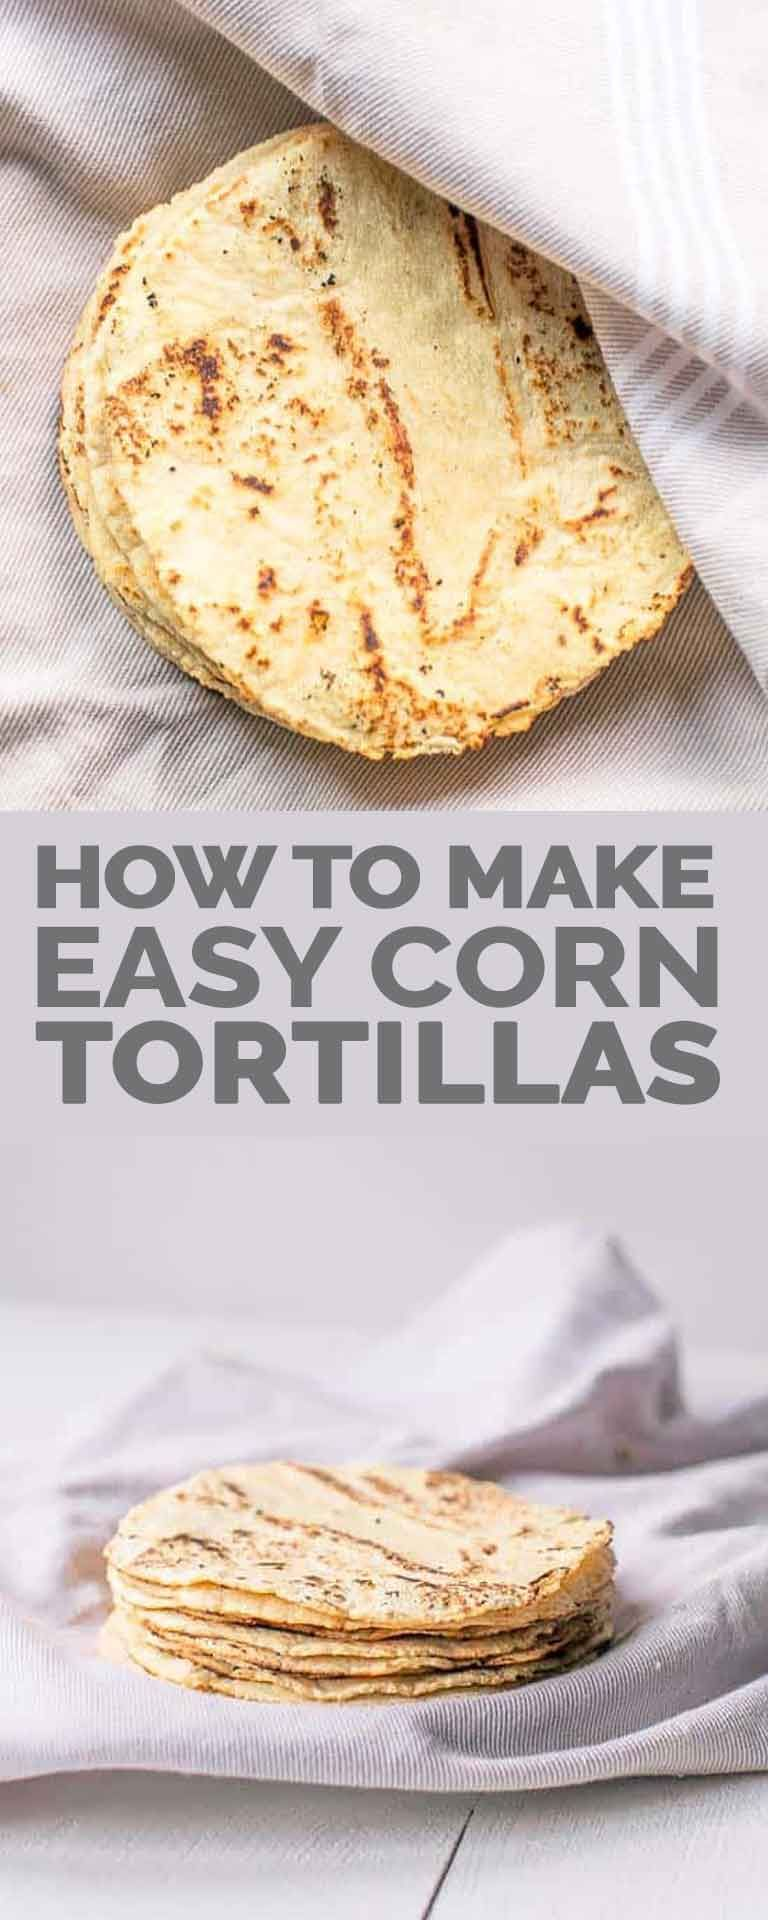 How To Make The Best Corn Tortillas The Tortilla Channel Recipe Corn Tortilla Recipes Food Corn Tortillas